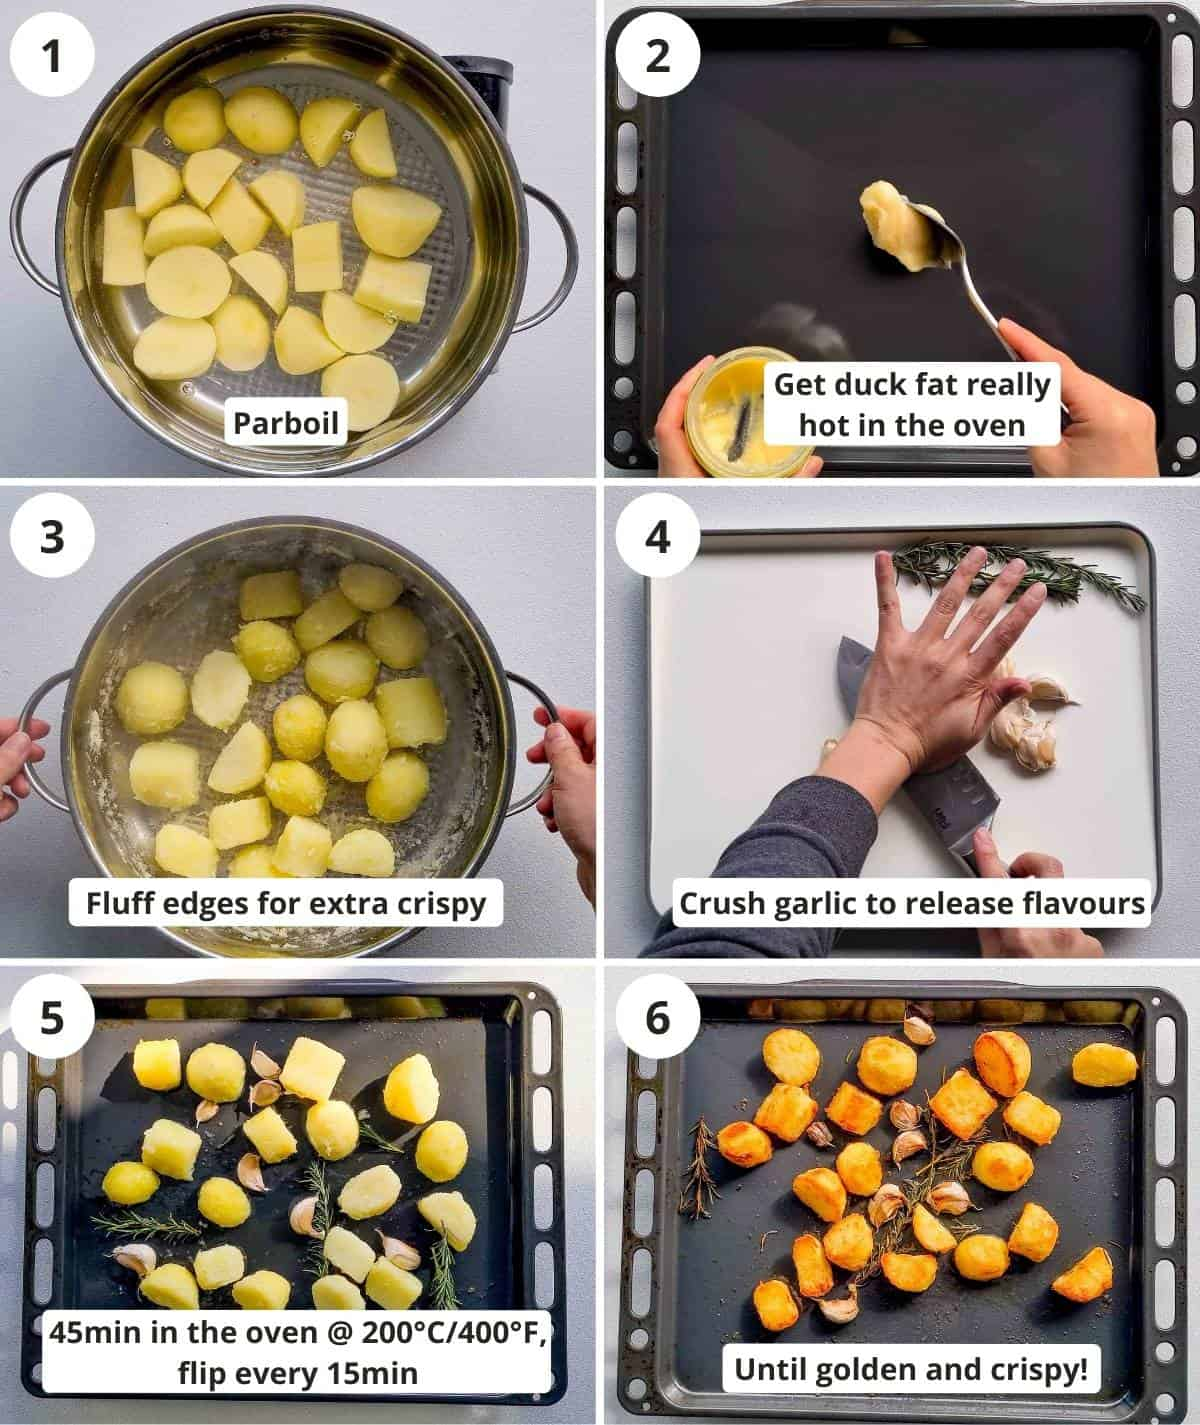 6 pictorial step by step instructions to make this recipe